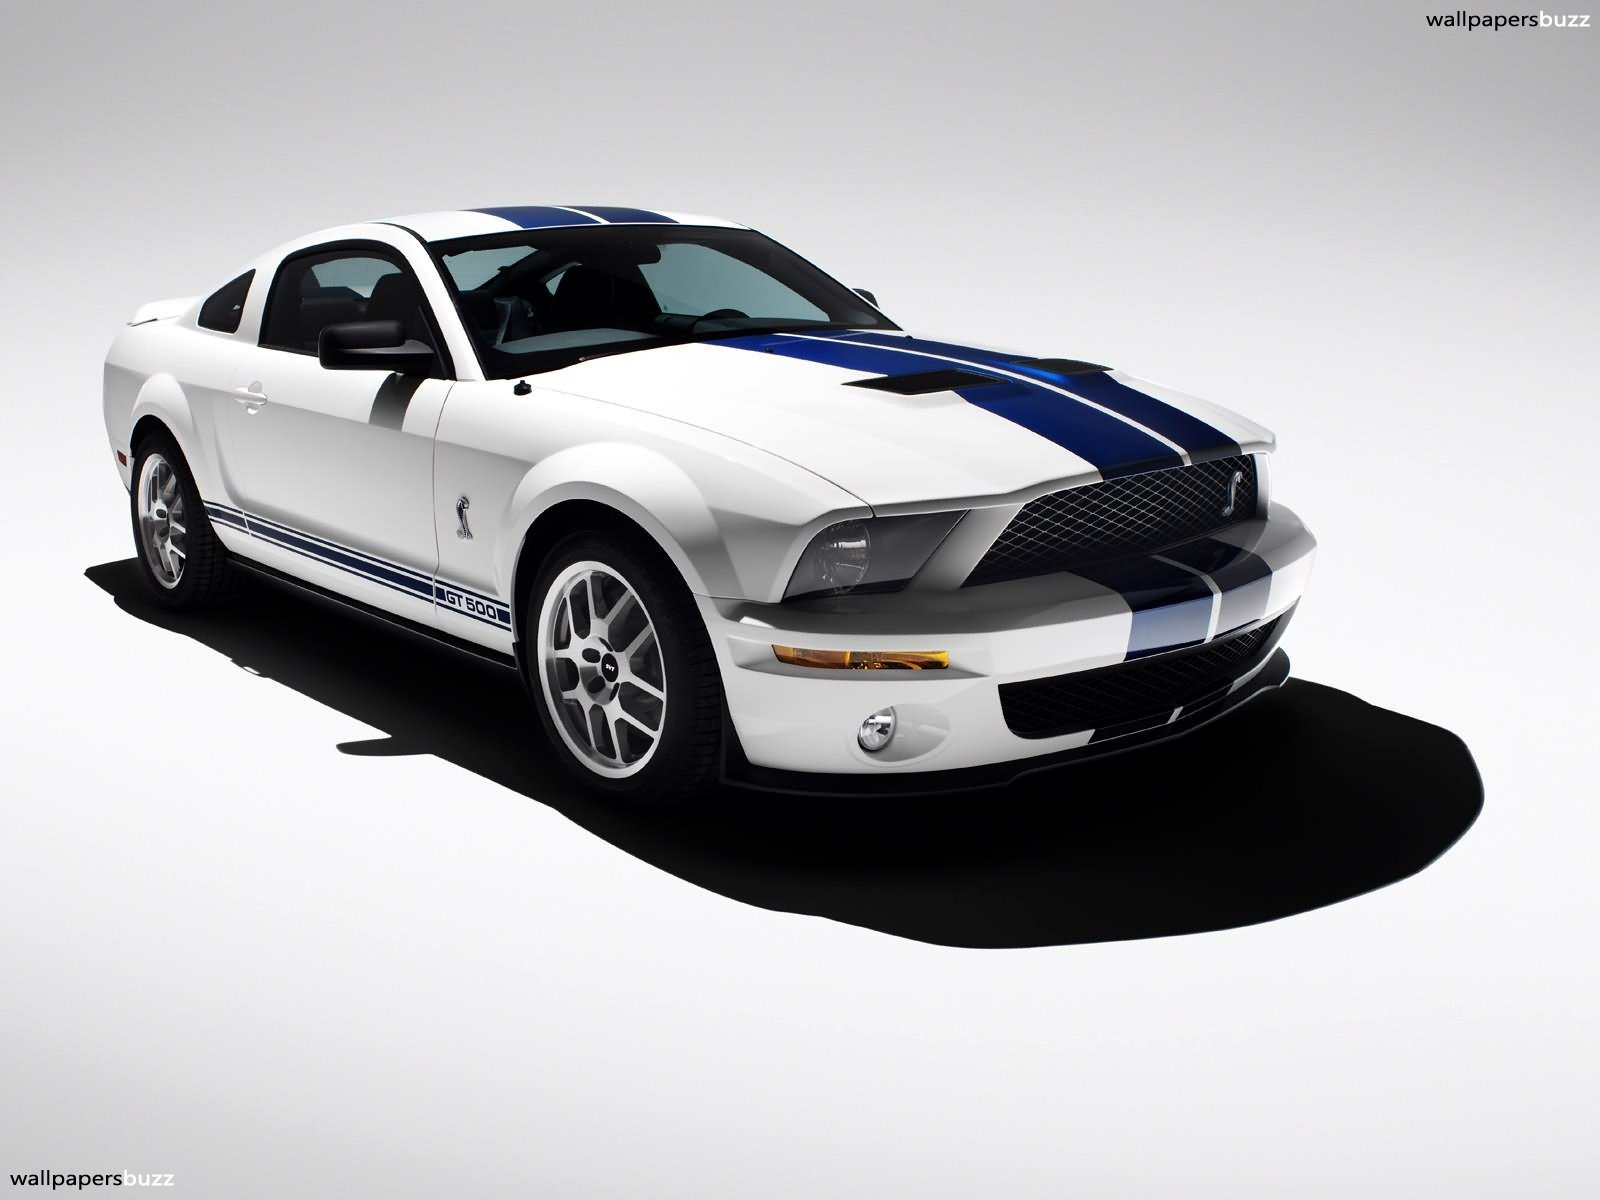 Ford Mustang Wallpaper 4597 Hd Wallpapers in Cars   Imagescicom 1600x1200